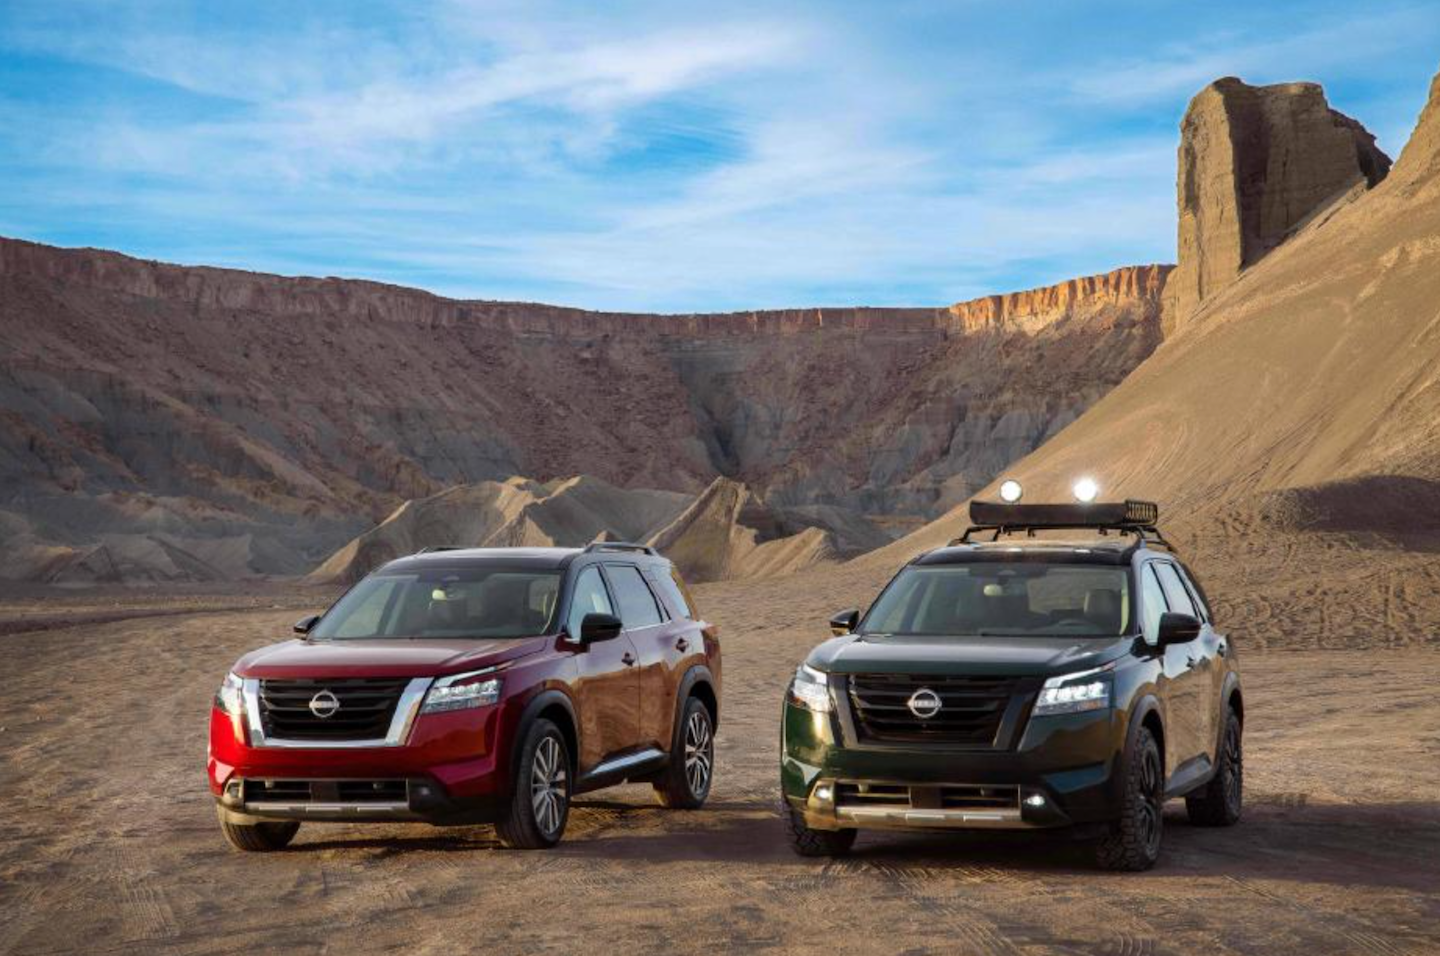 Two 2022 Nissan Pathfinder vehicles parked in a desert next to each other.